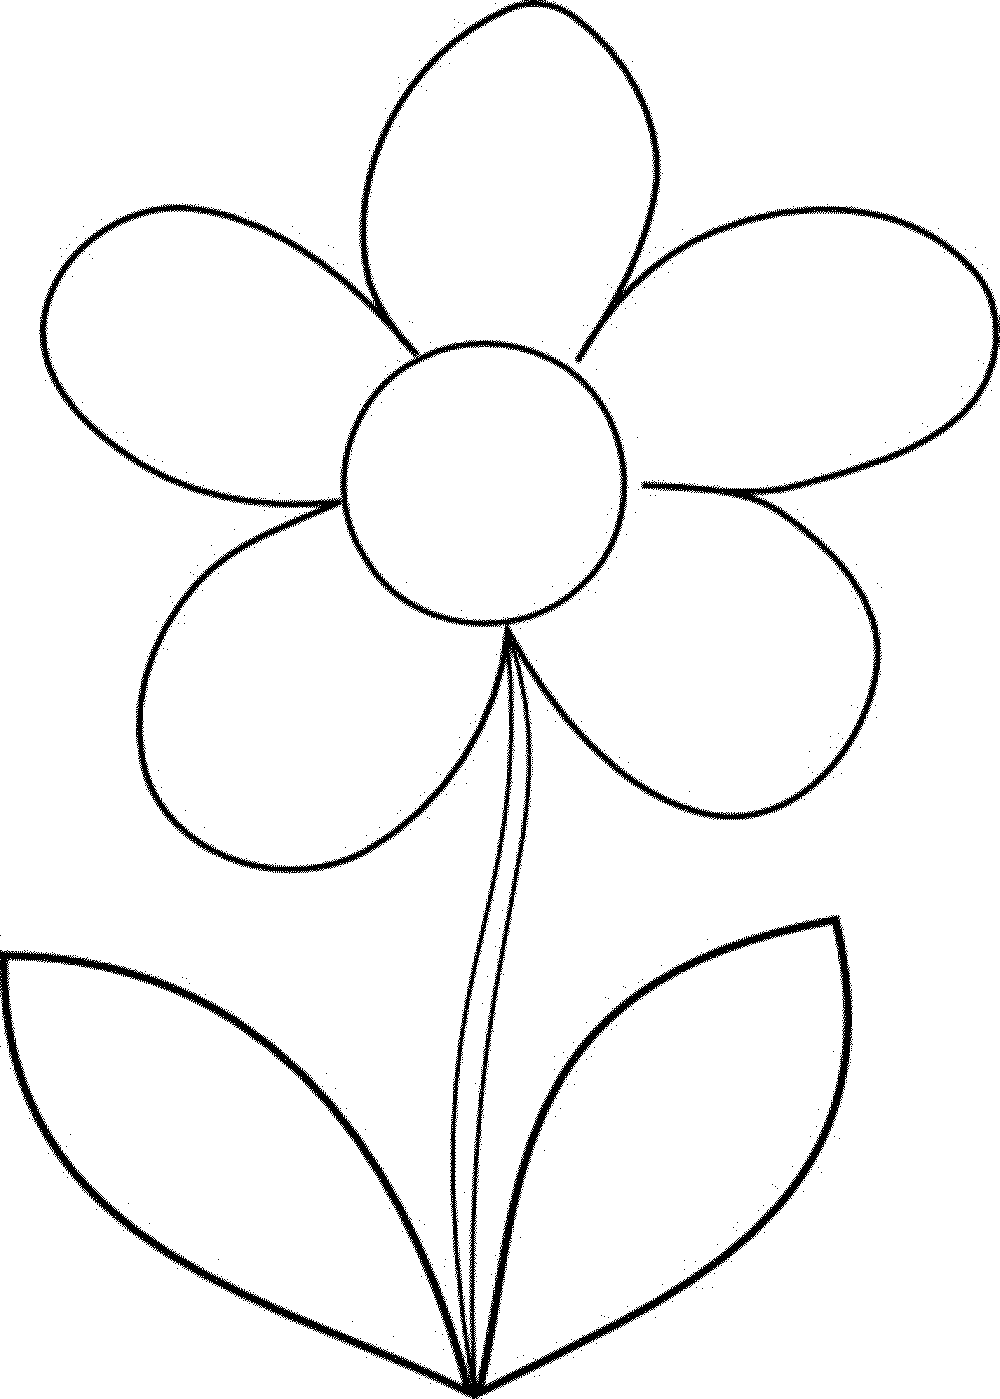 Flower Coloring Worksheets Kindergarten. Flower. Best Free